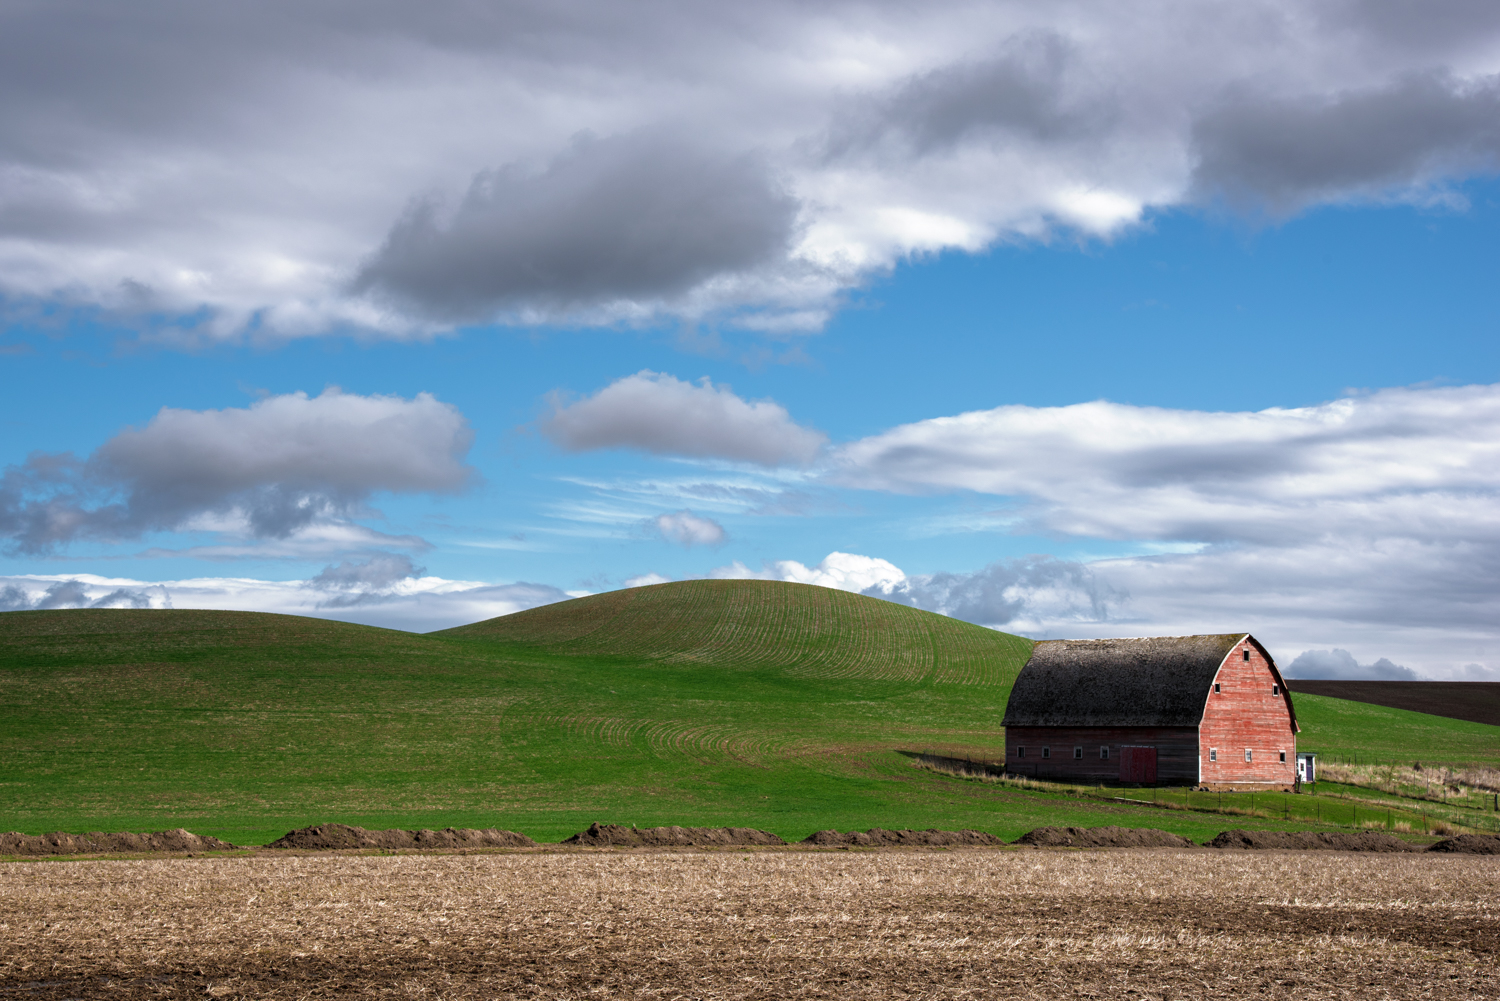 Spring Colors of the Palouse